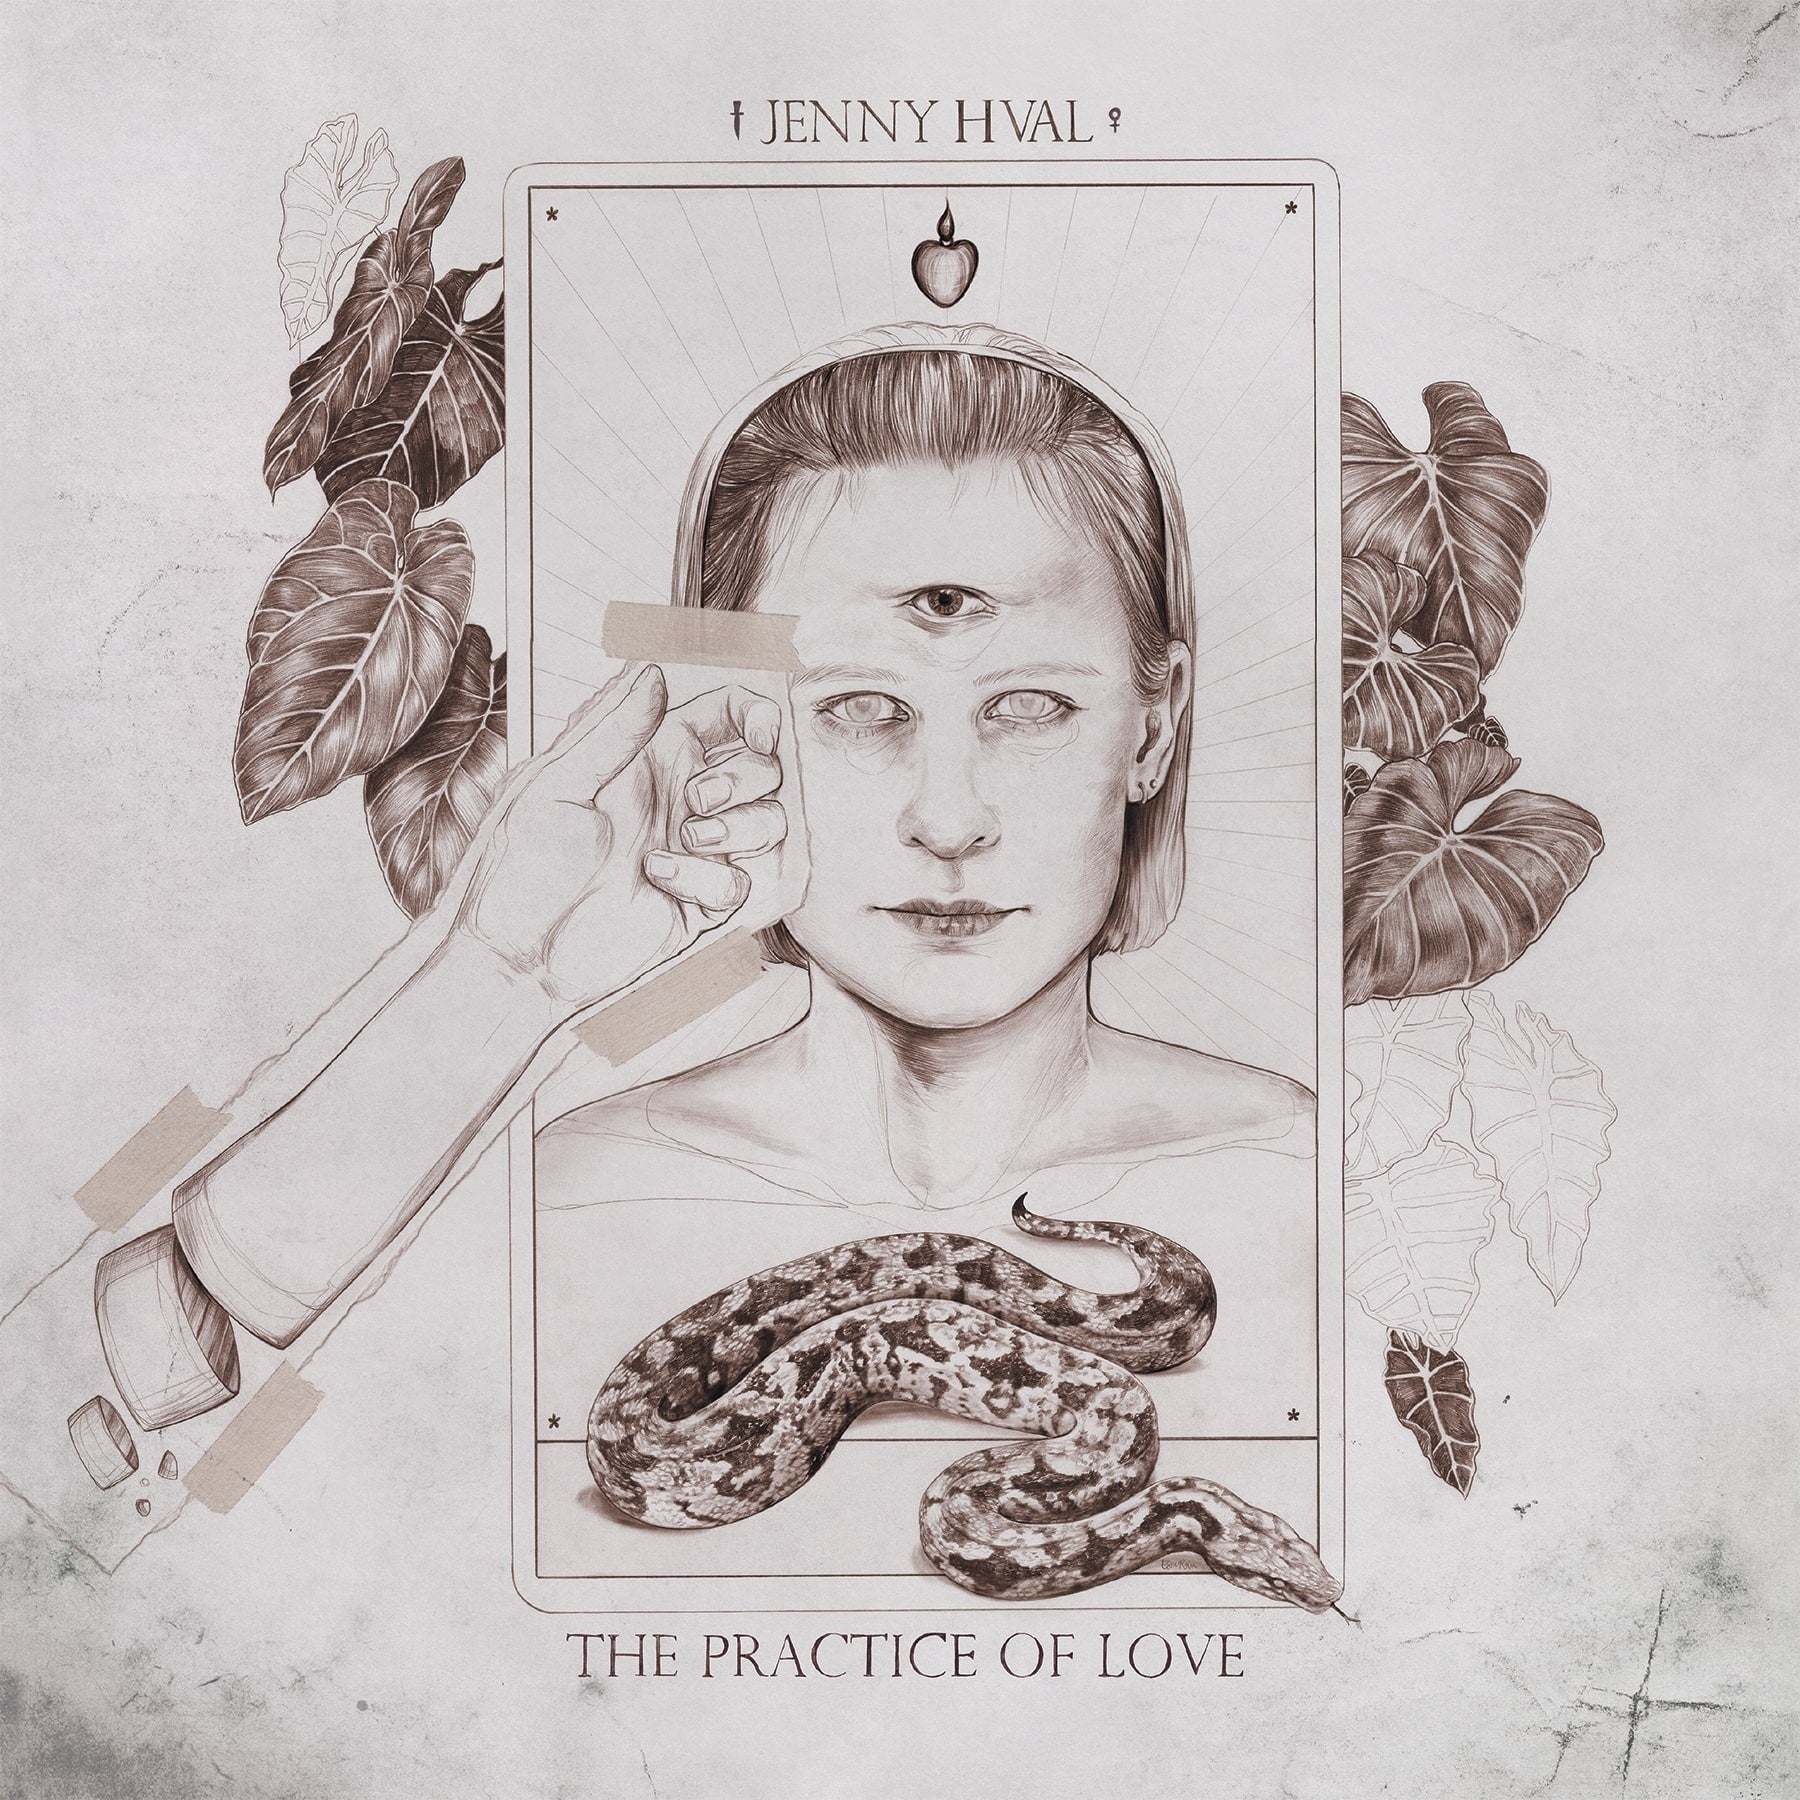 Jenny Hval - The Practice of Love - New LP Record 2019 Sacred Bones Limited Edition Sand Colored Vinyl - Electronic / Art Pop